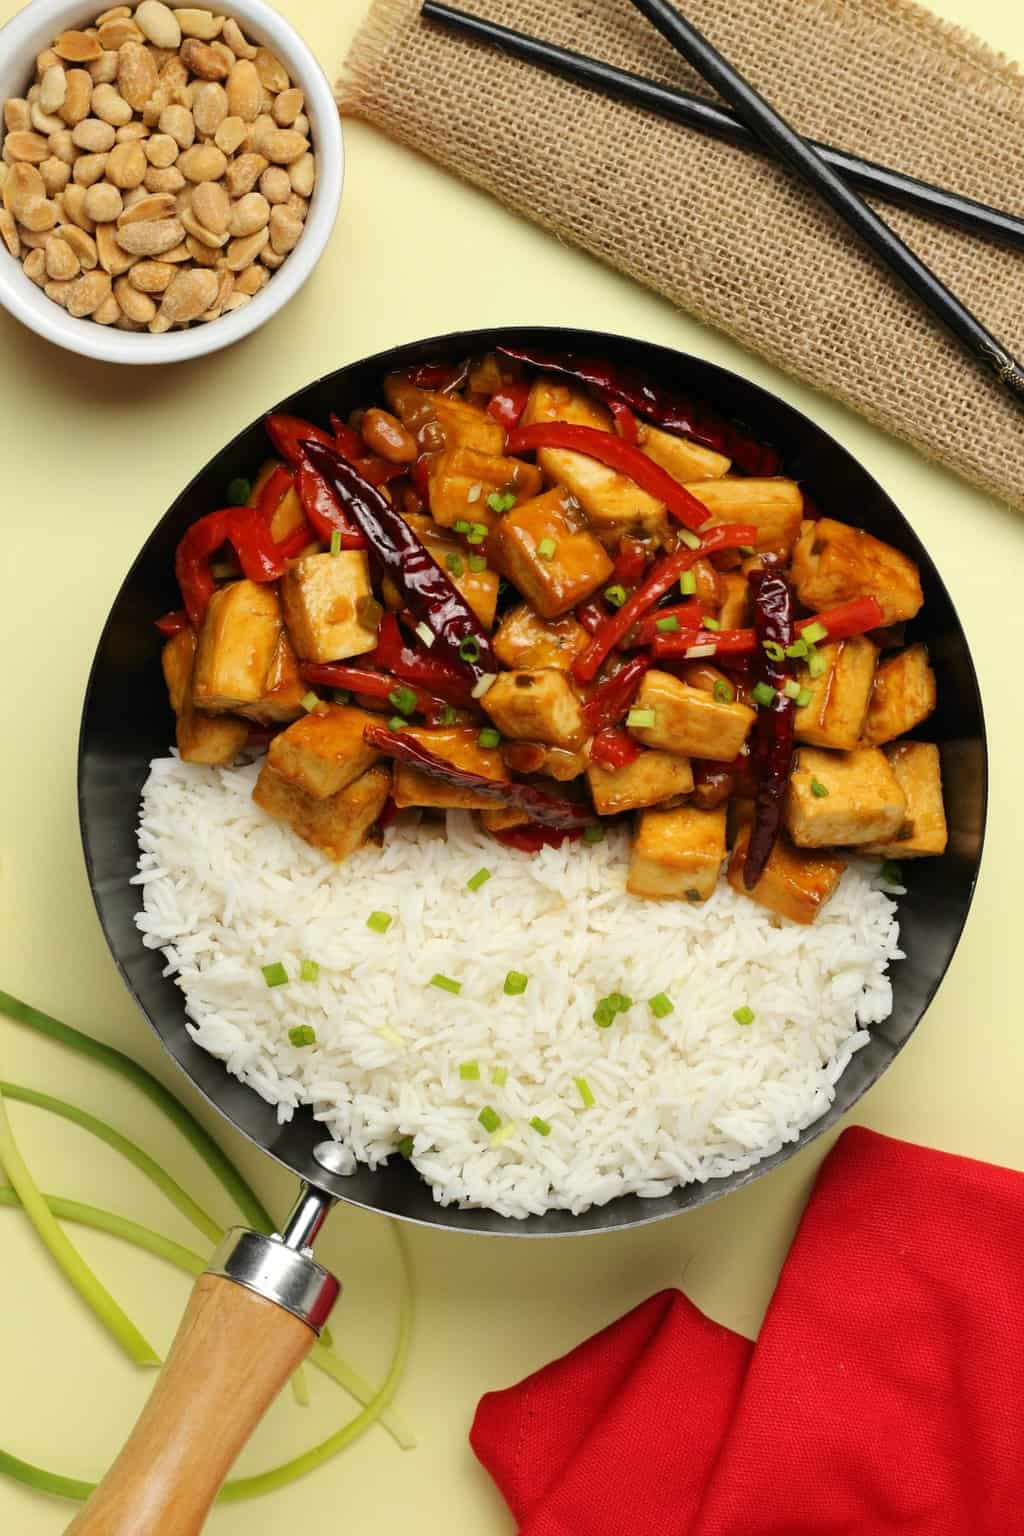 Kung pao tofu in a wok with rice and topped with chopped spring onions.